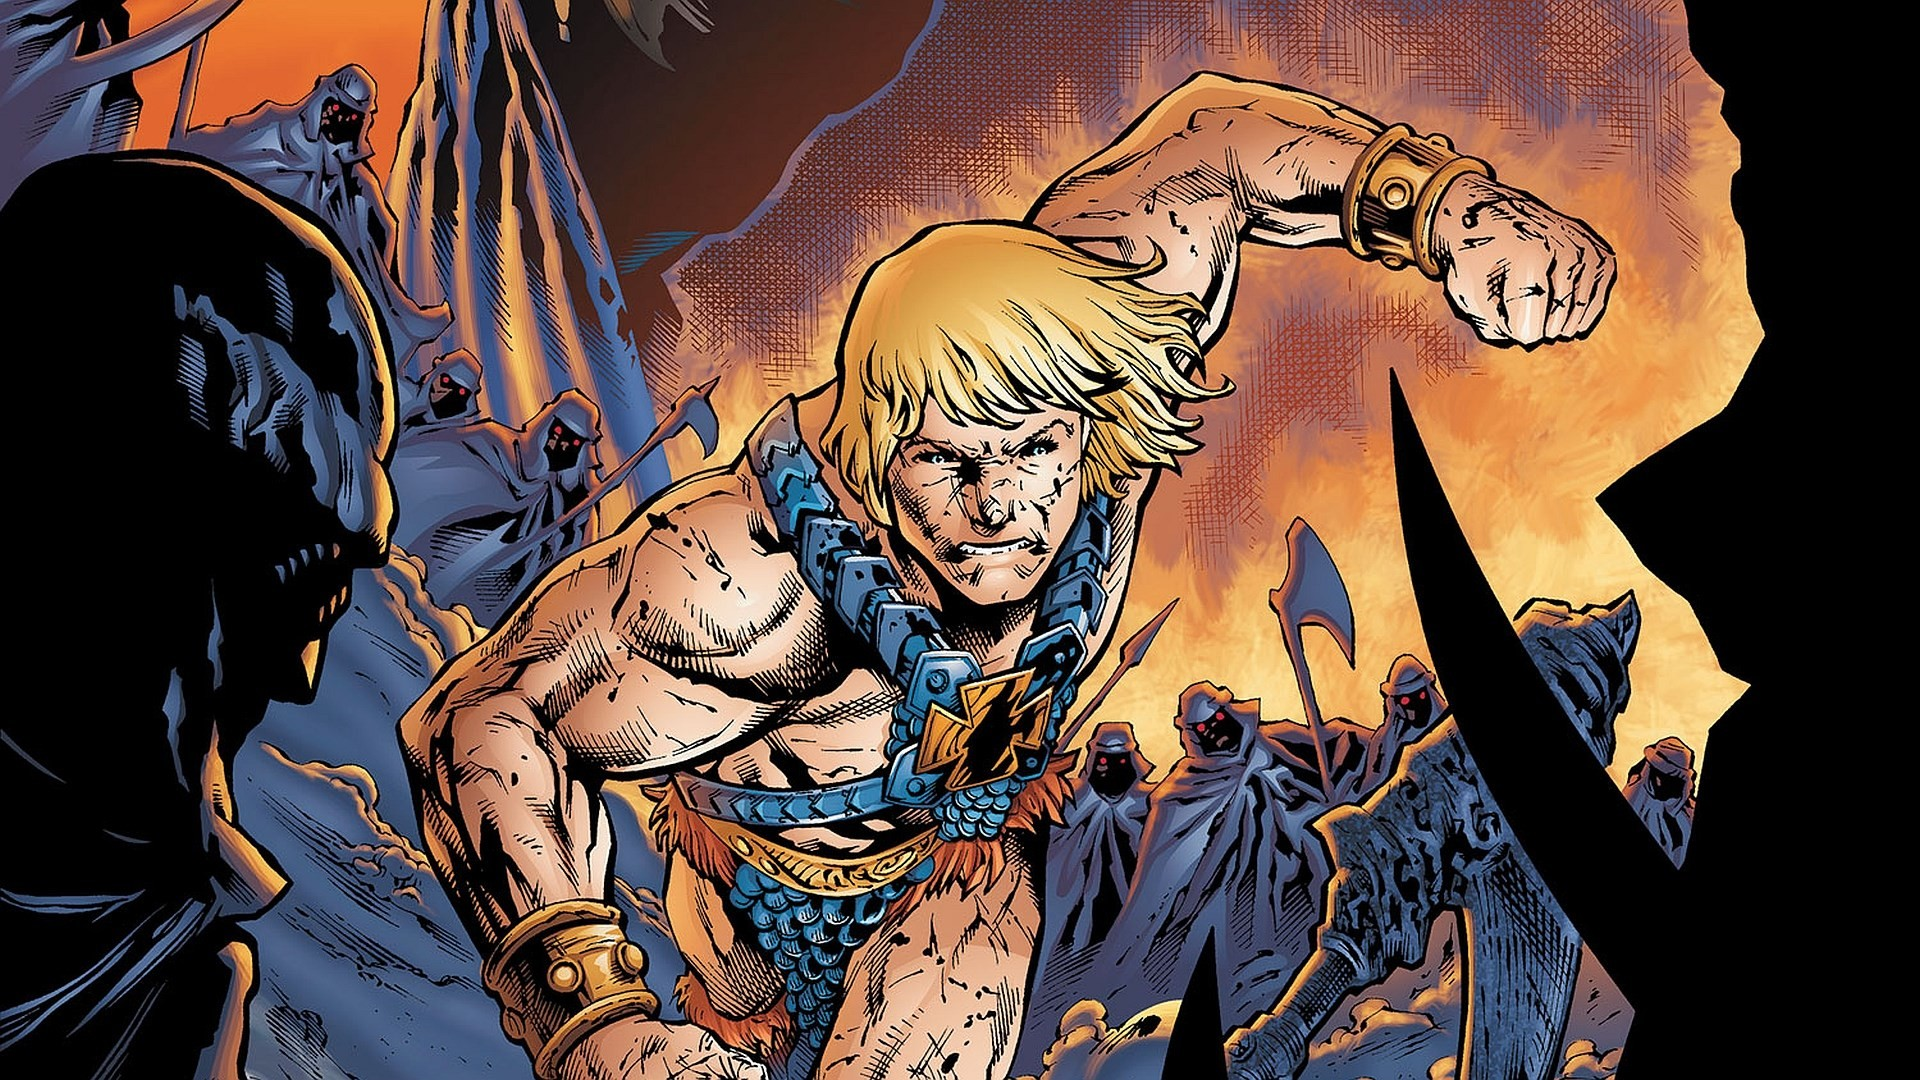 he man and the masters of the universe wallpaper – Background hd by Wenham  Walter (